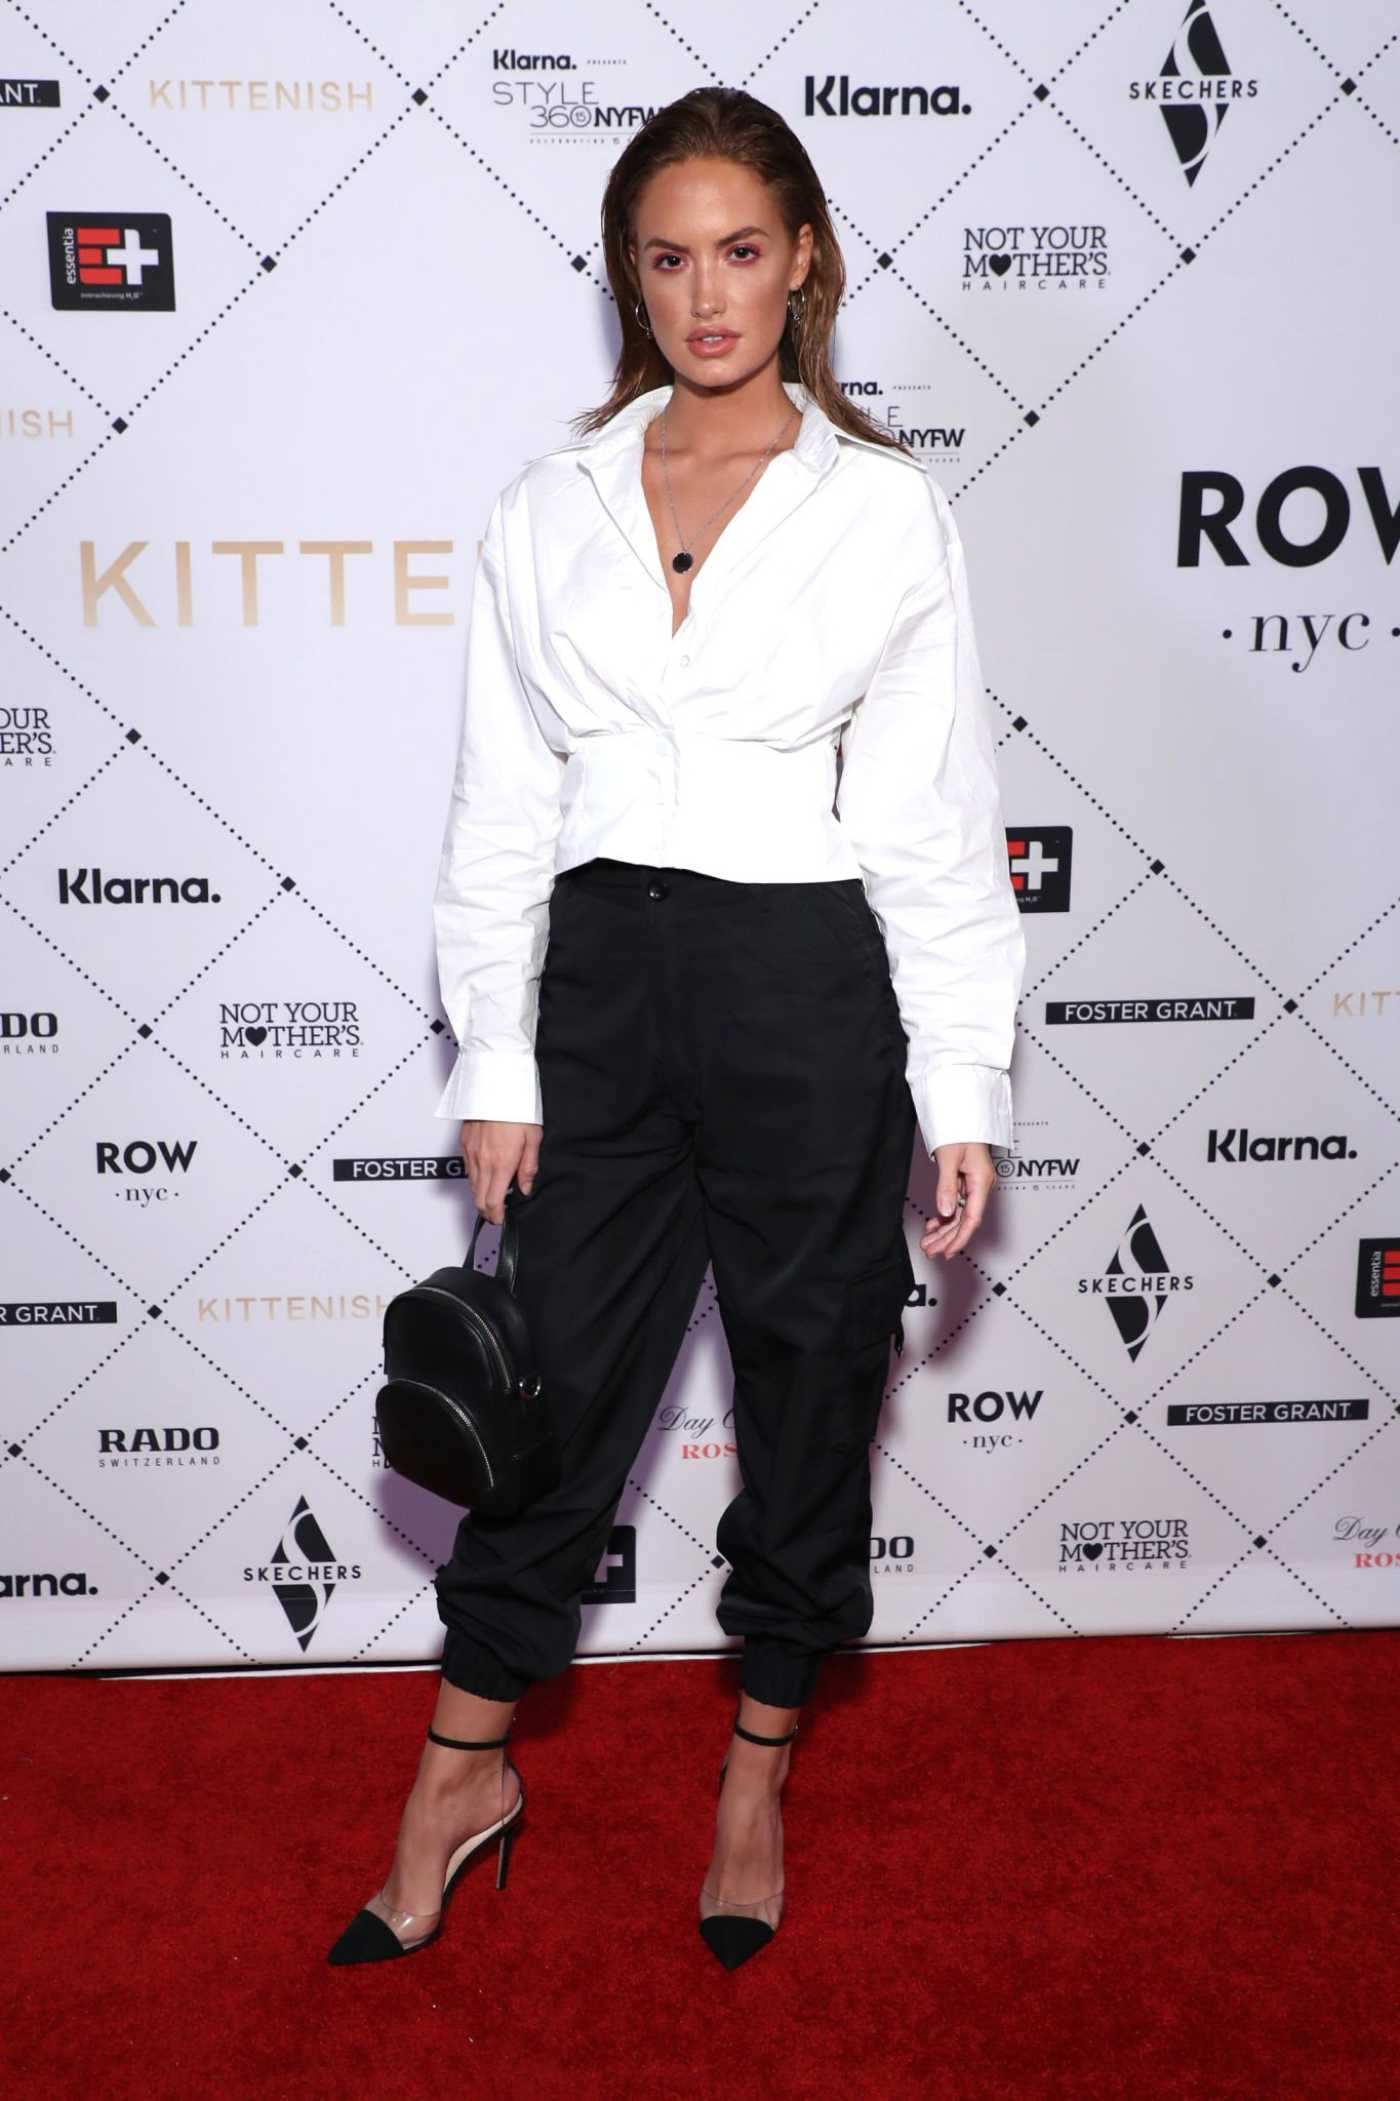 Haley Kalil Attends the Kittenish Fashion Show During New York Fashion Week in New York 09/09/2019